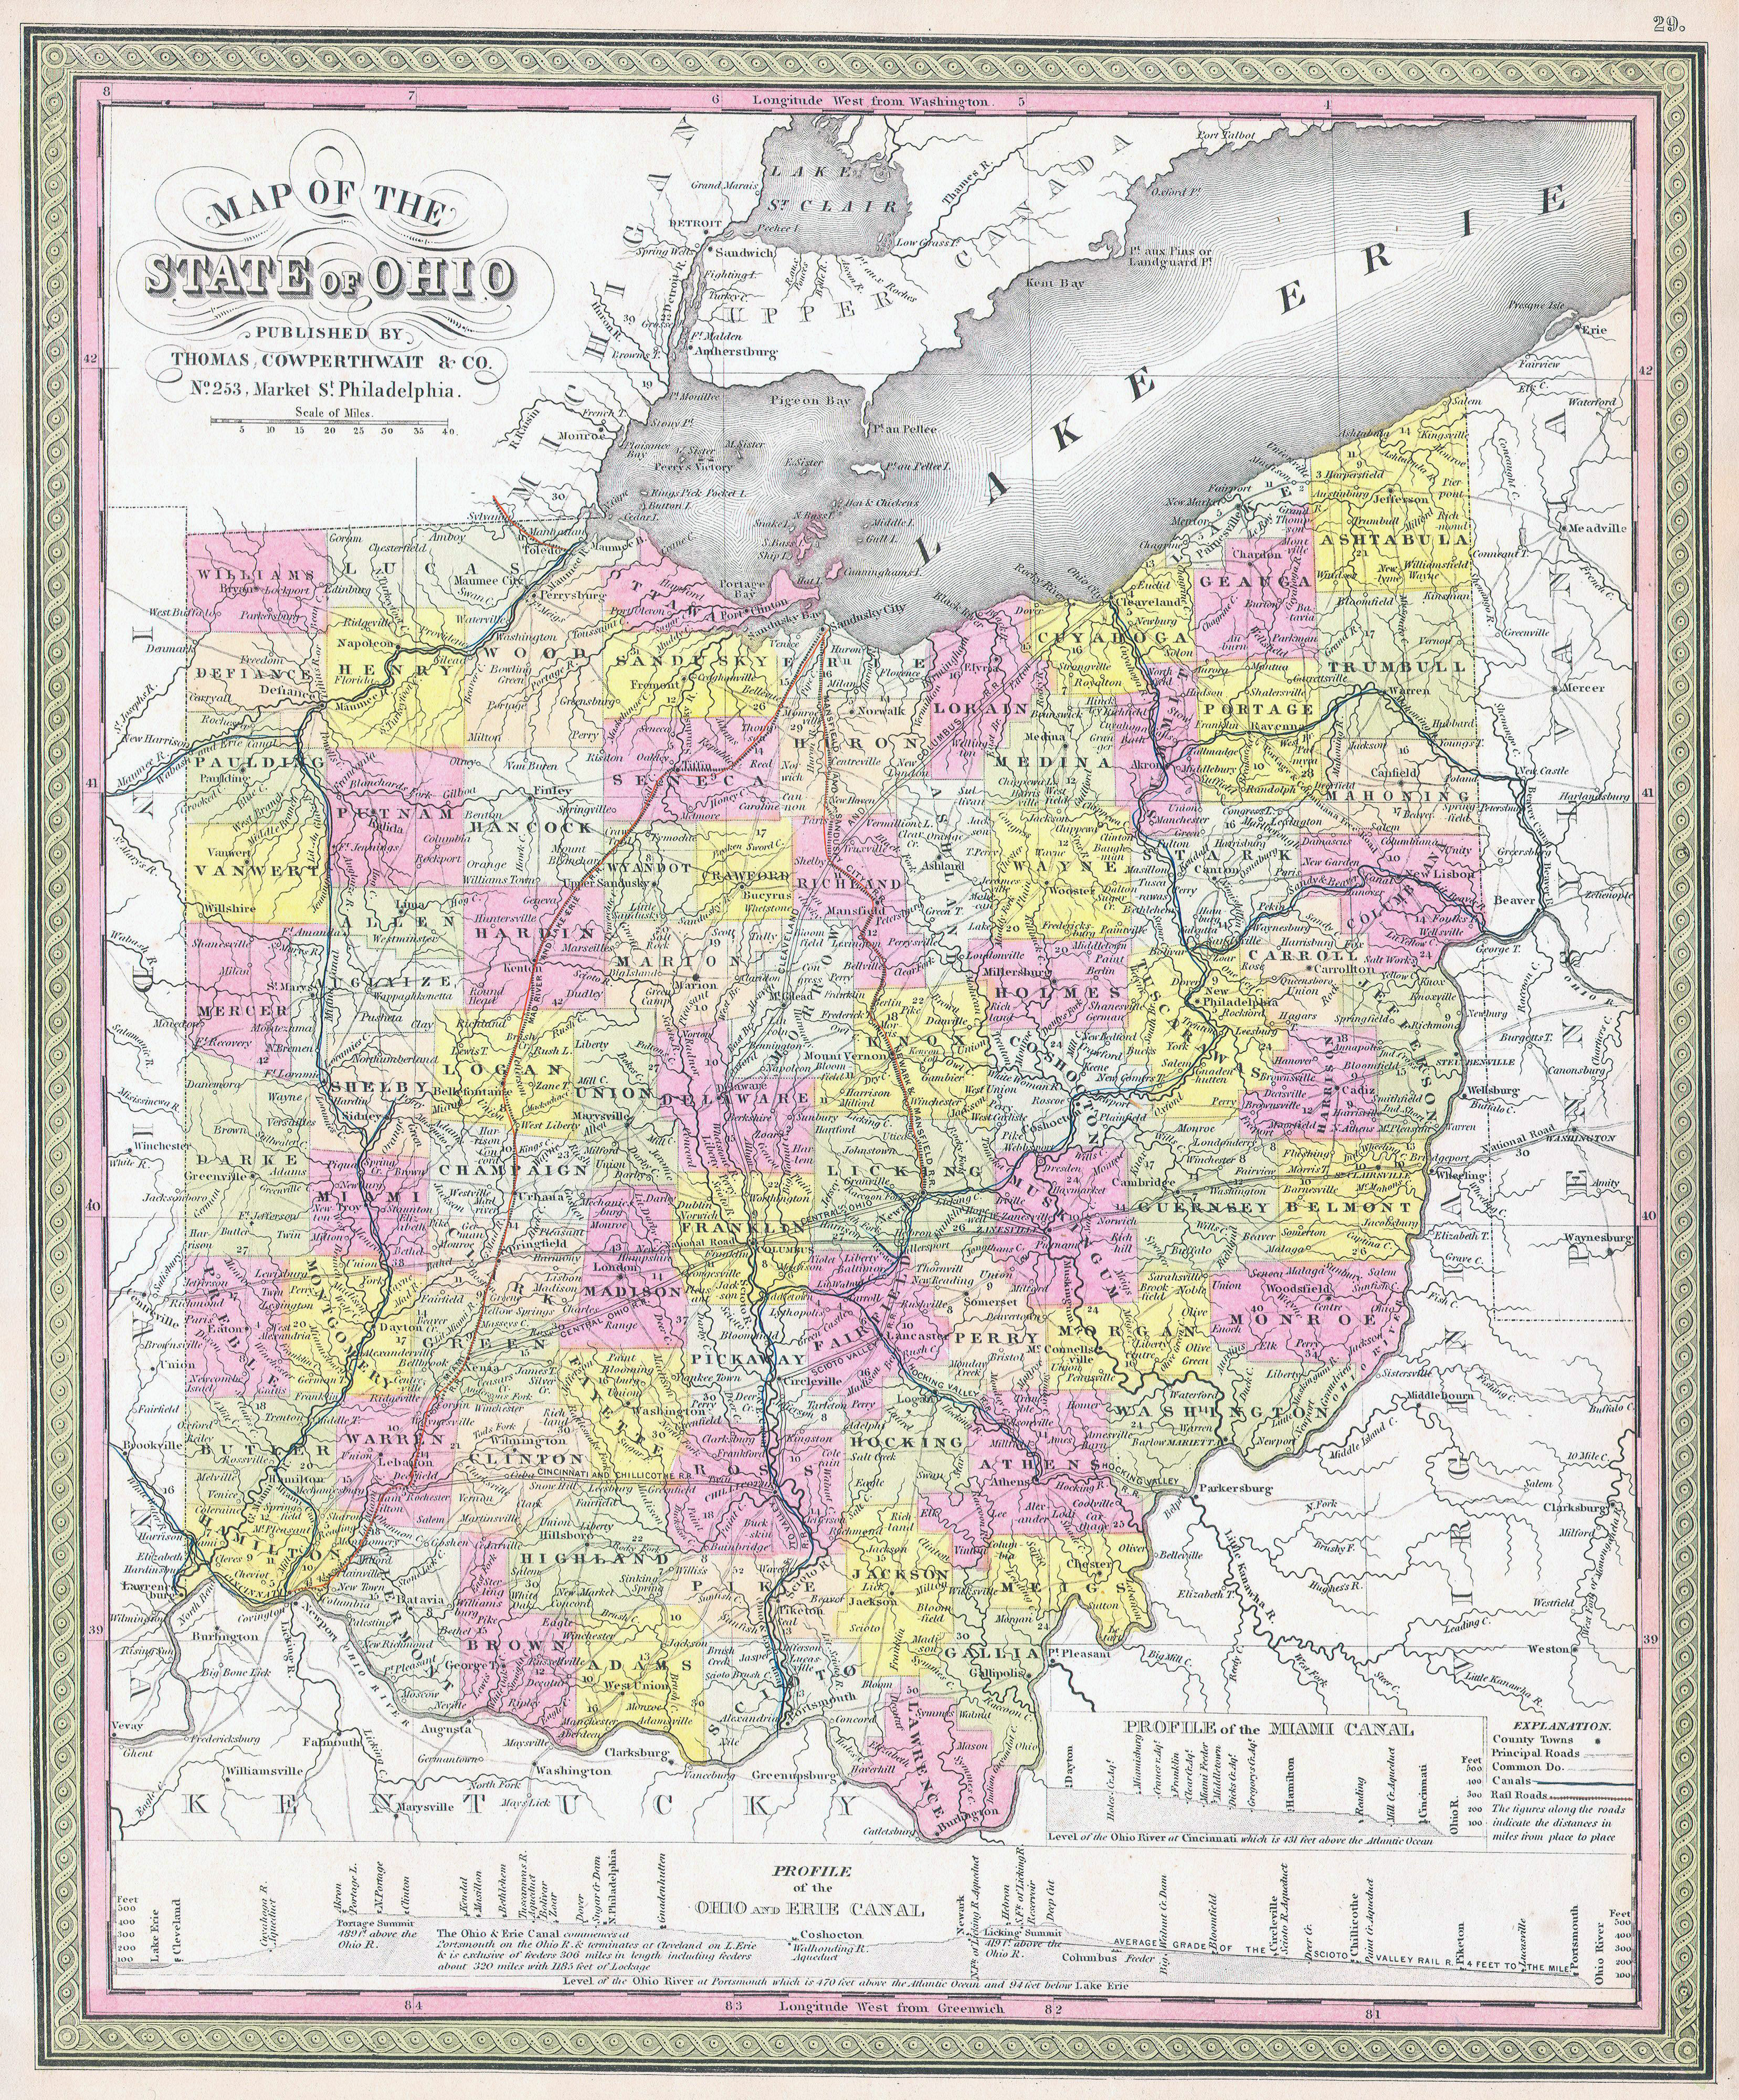 Large Detailed Old Administrative Map Of Ohio State 1850 Vidiani